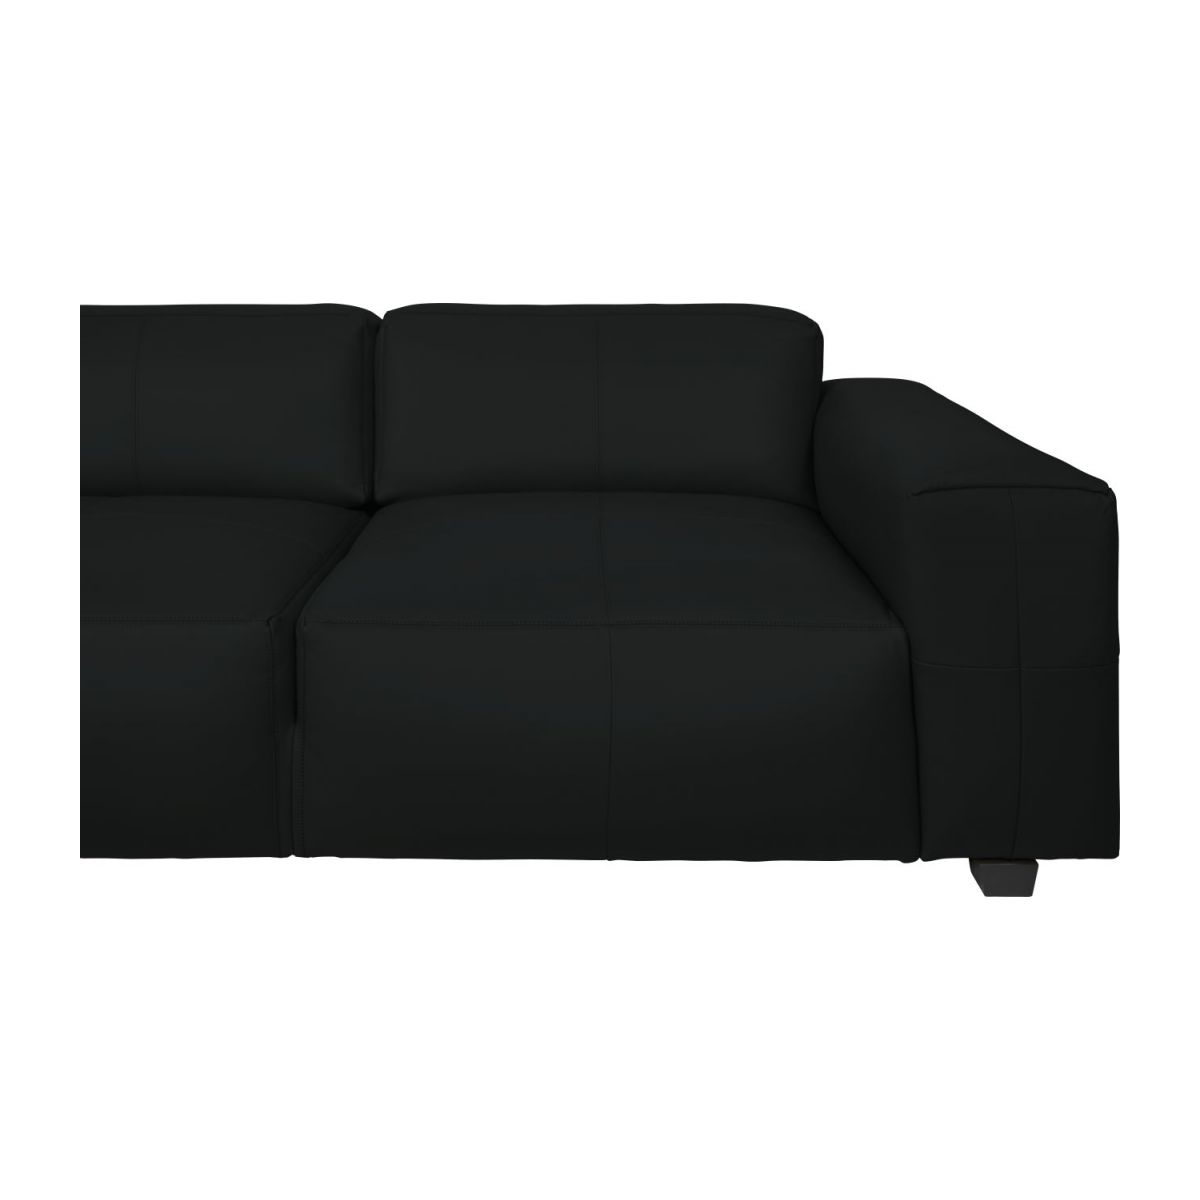 4 seater sofa in Savoy semi-aniline leather, platin black n°8